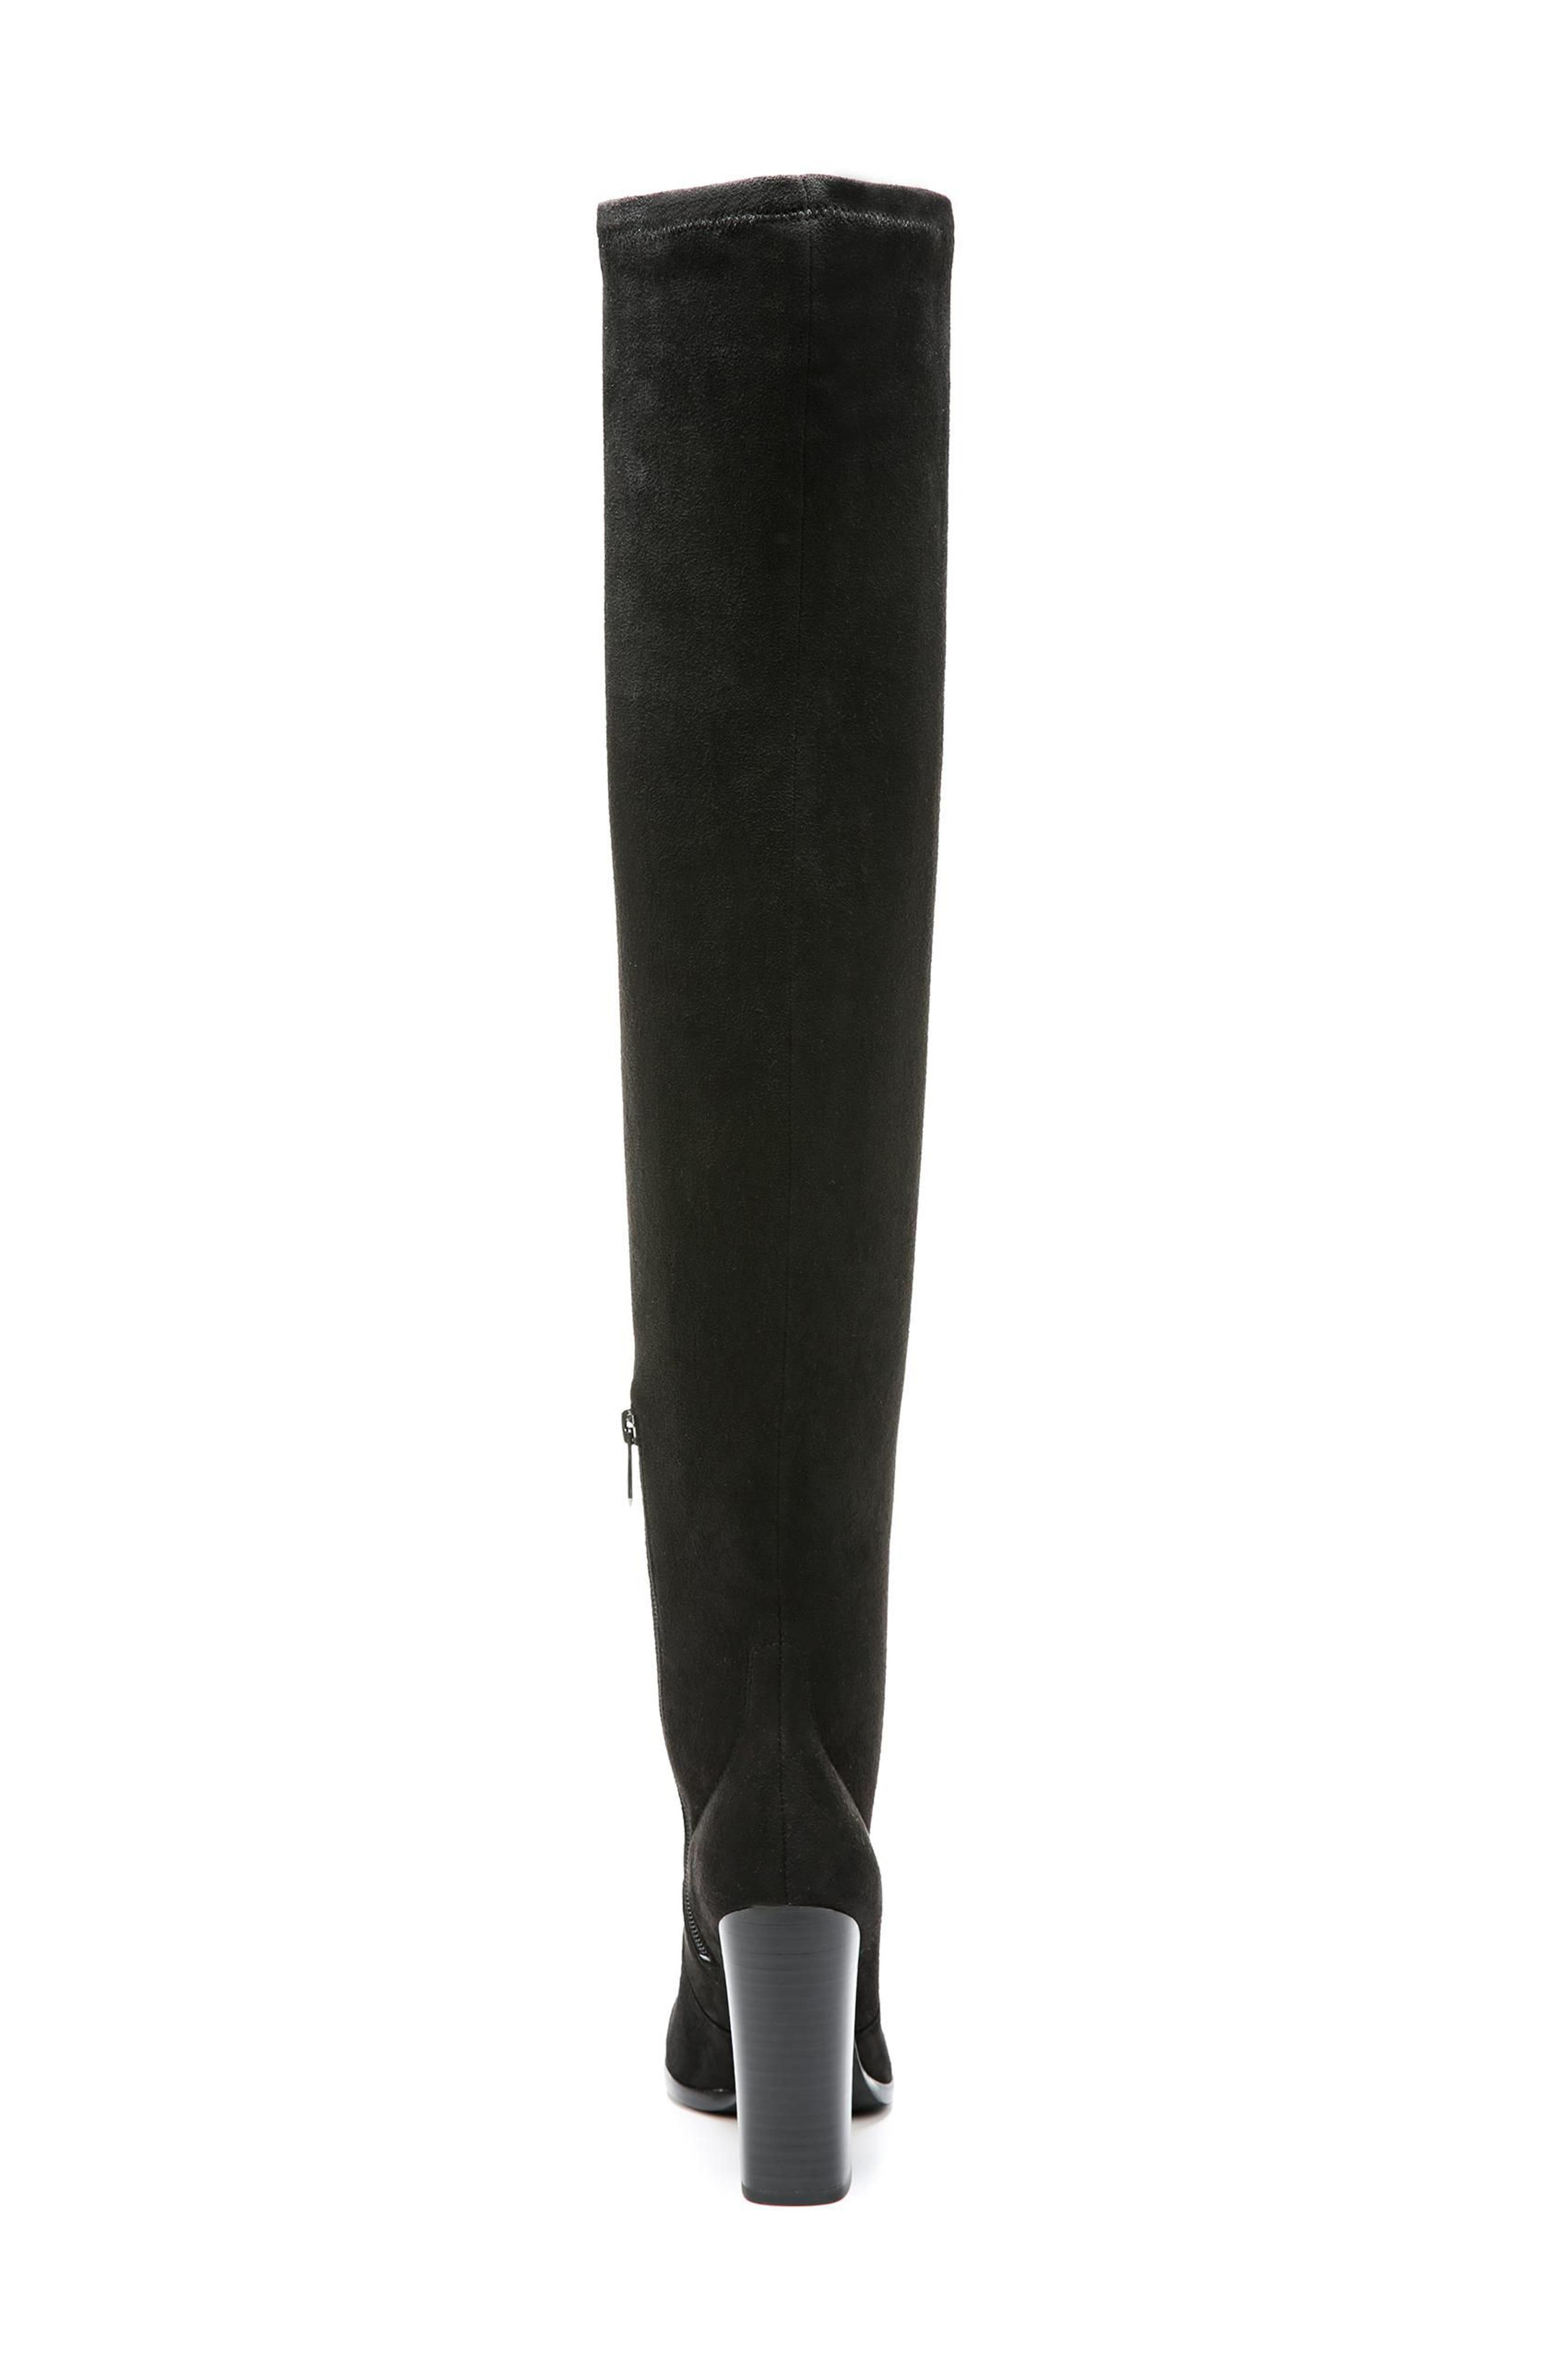 Vena 2 Over the Knee Boot,                             Alternate thumbnail 7, color,                             002